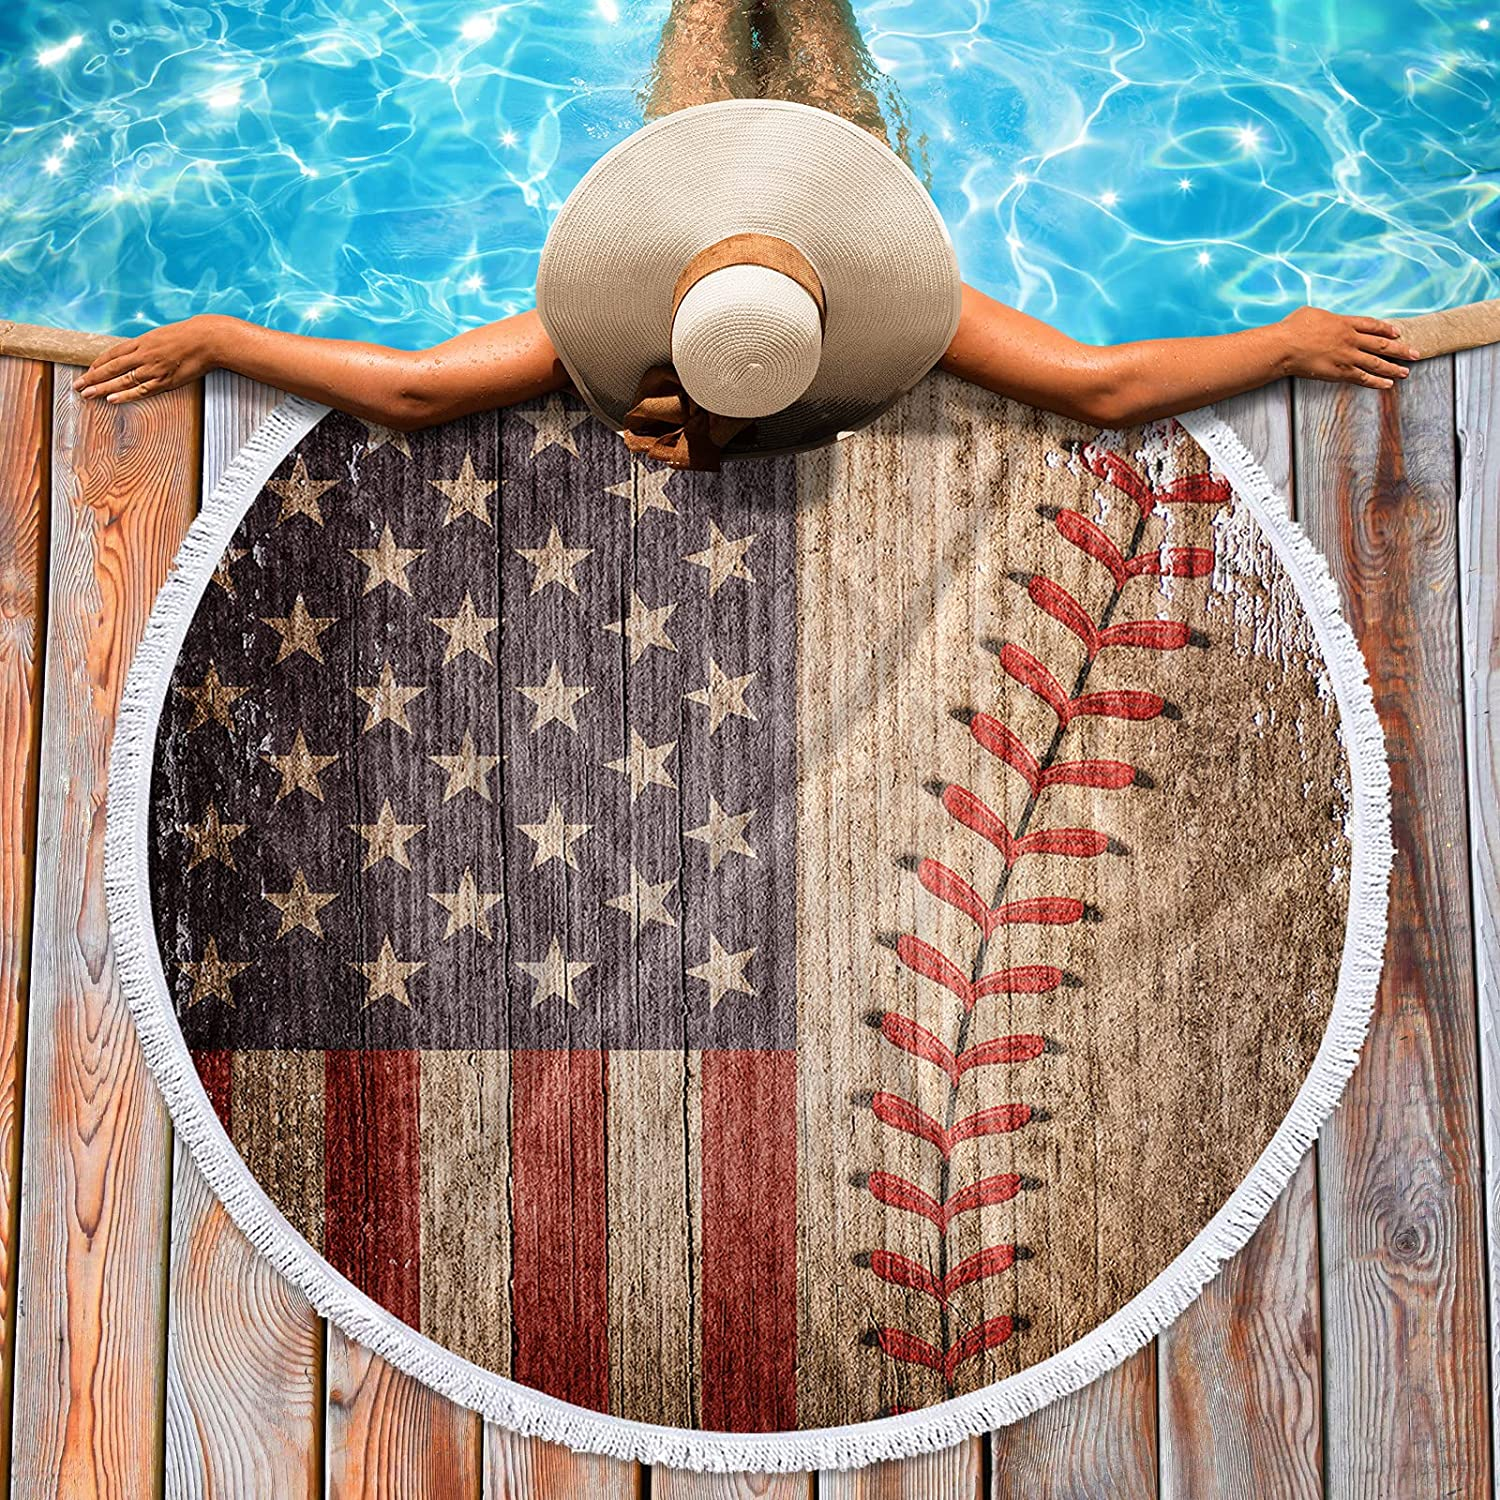 Krisyeol Soft Round Beach Towel American Max 83% OFF with Blanket F Max 69% OFF Baseball